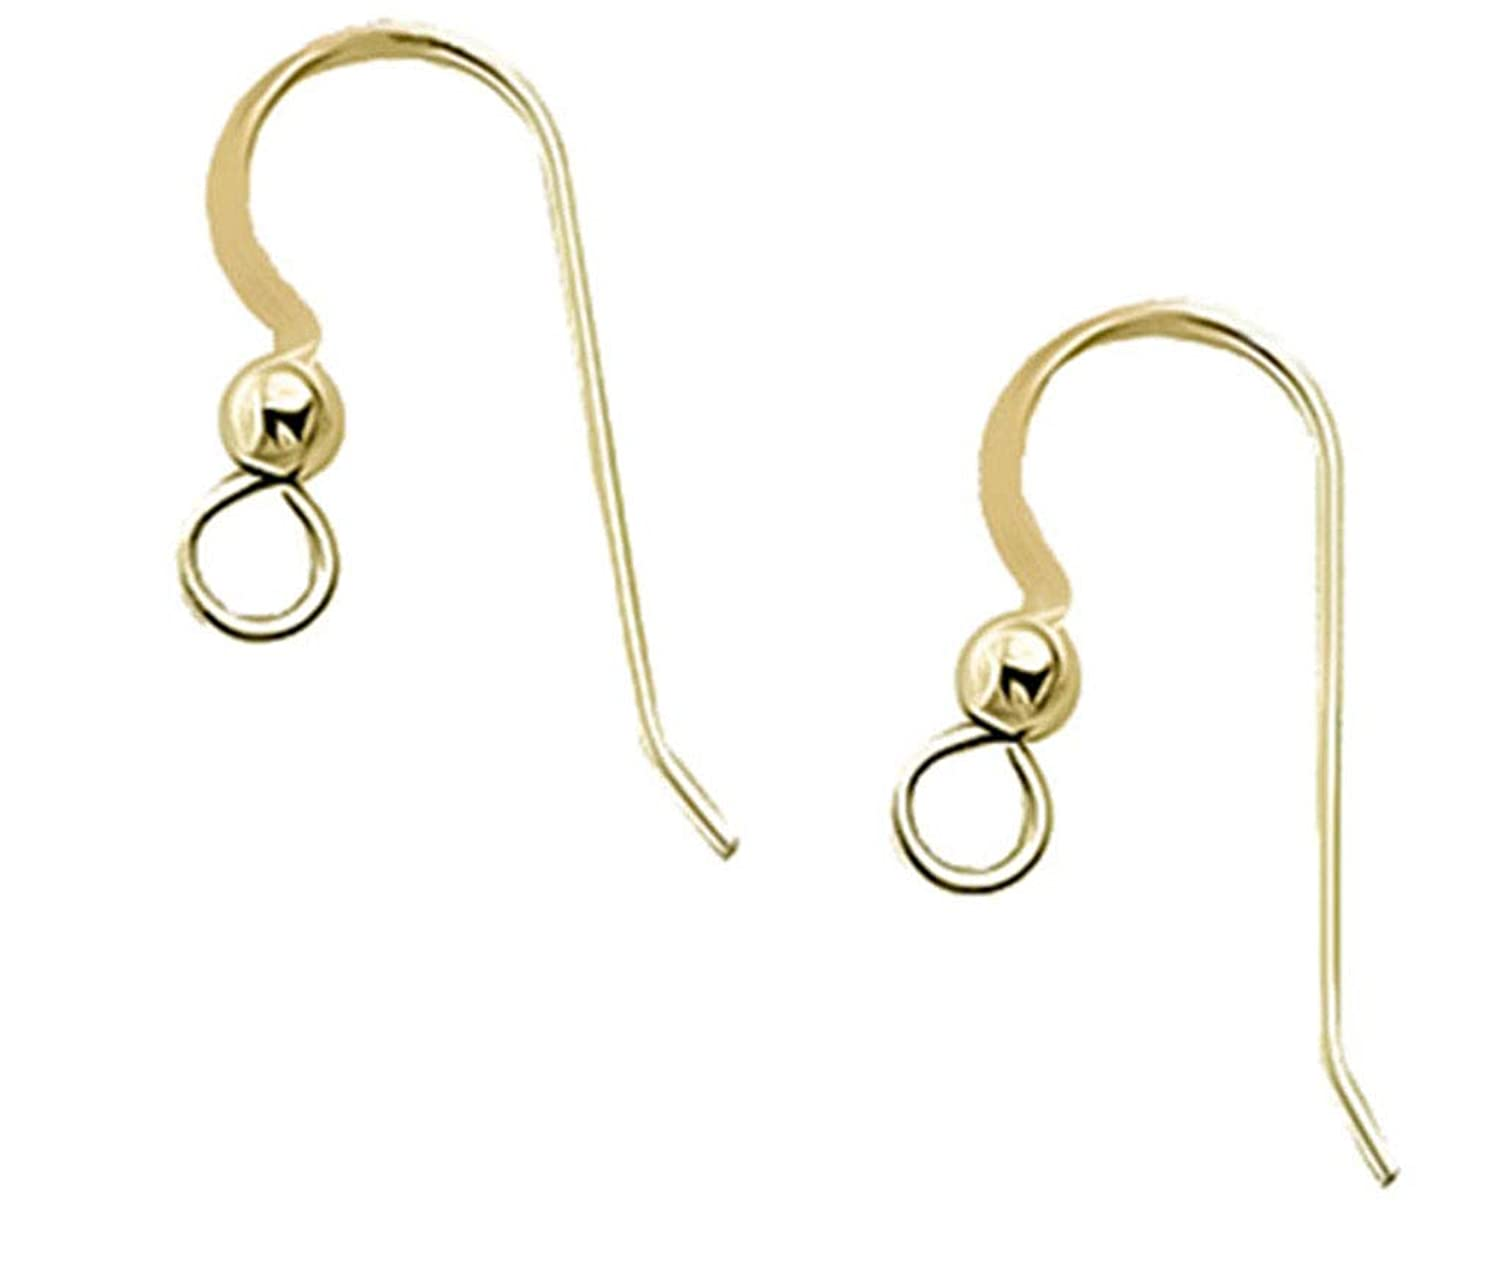 uGems Earwire 14kt Solid Yellow Gold Earring Parts .025